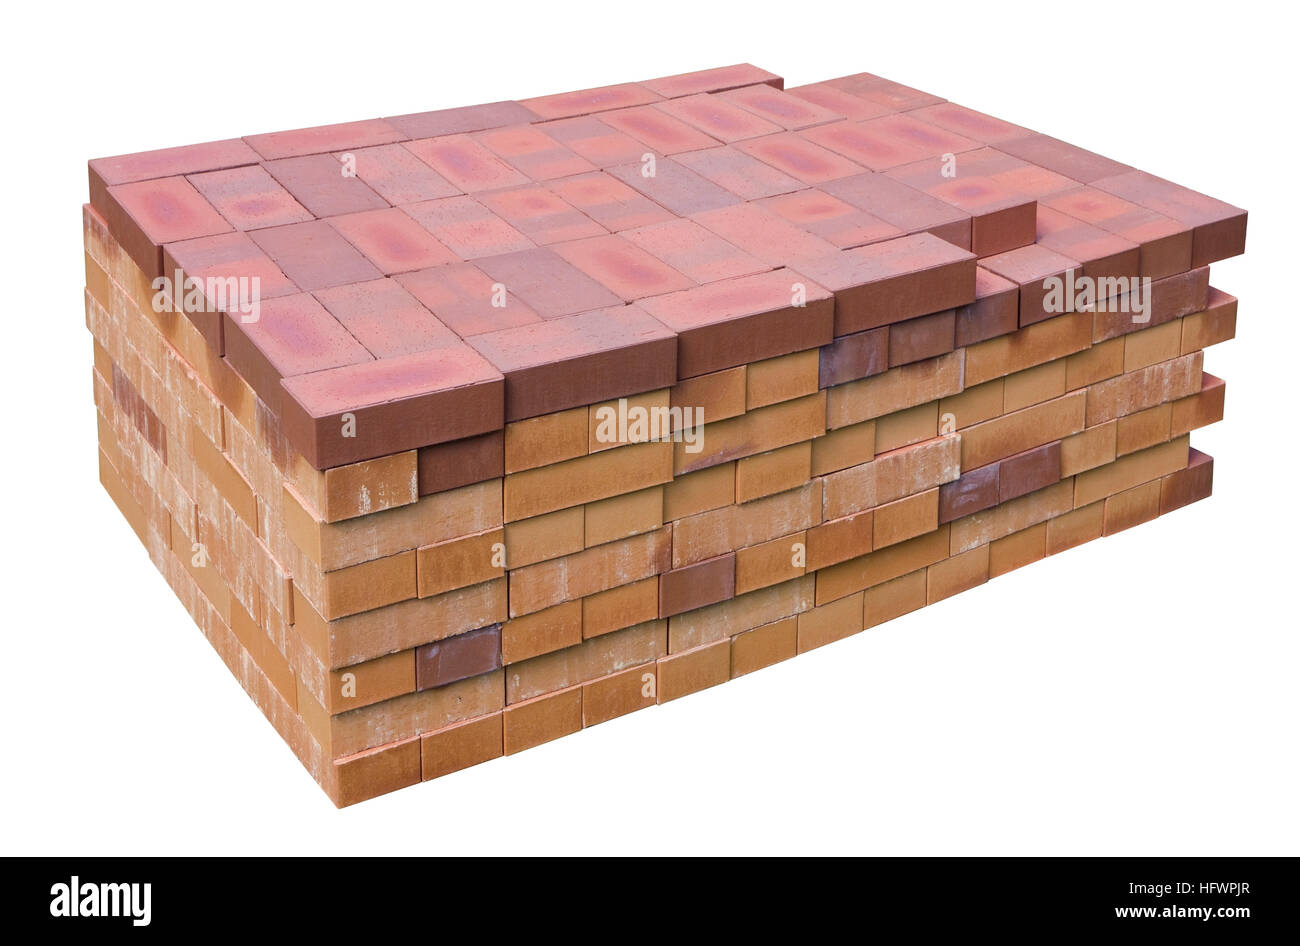 Accurate big stack of red clay bricks for a construction of the rural house. Isolated on white - Stock Image